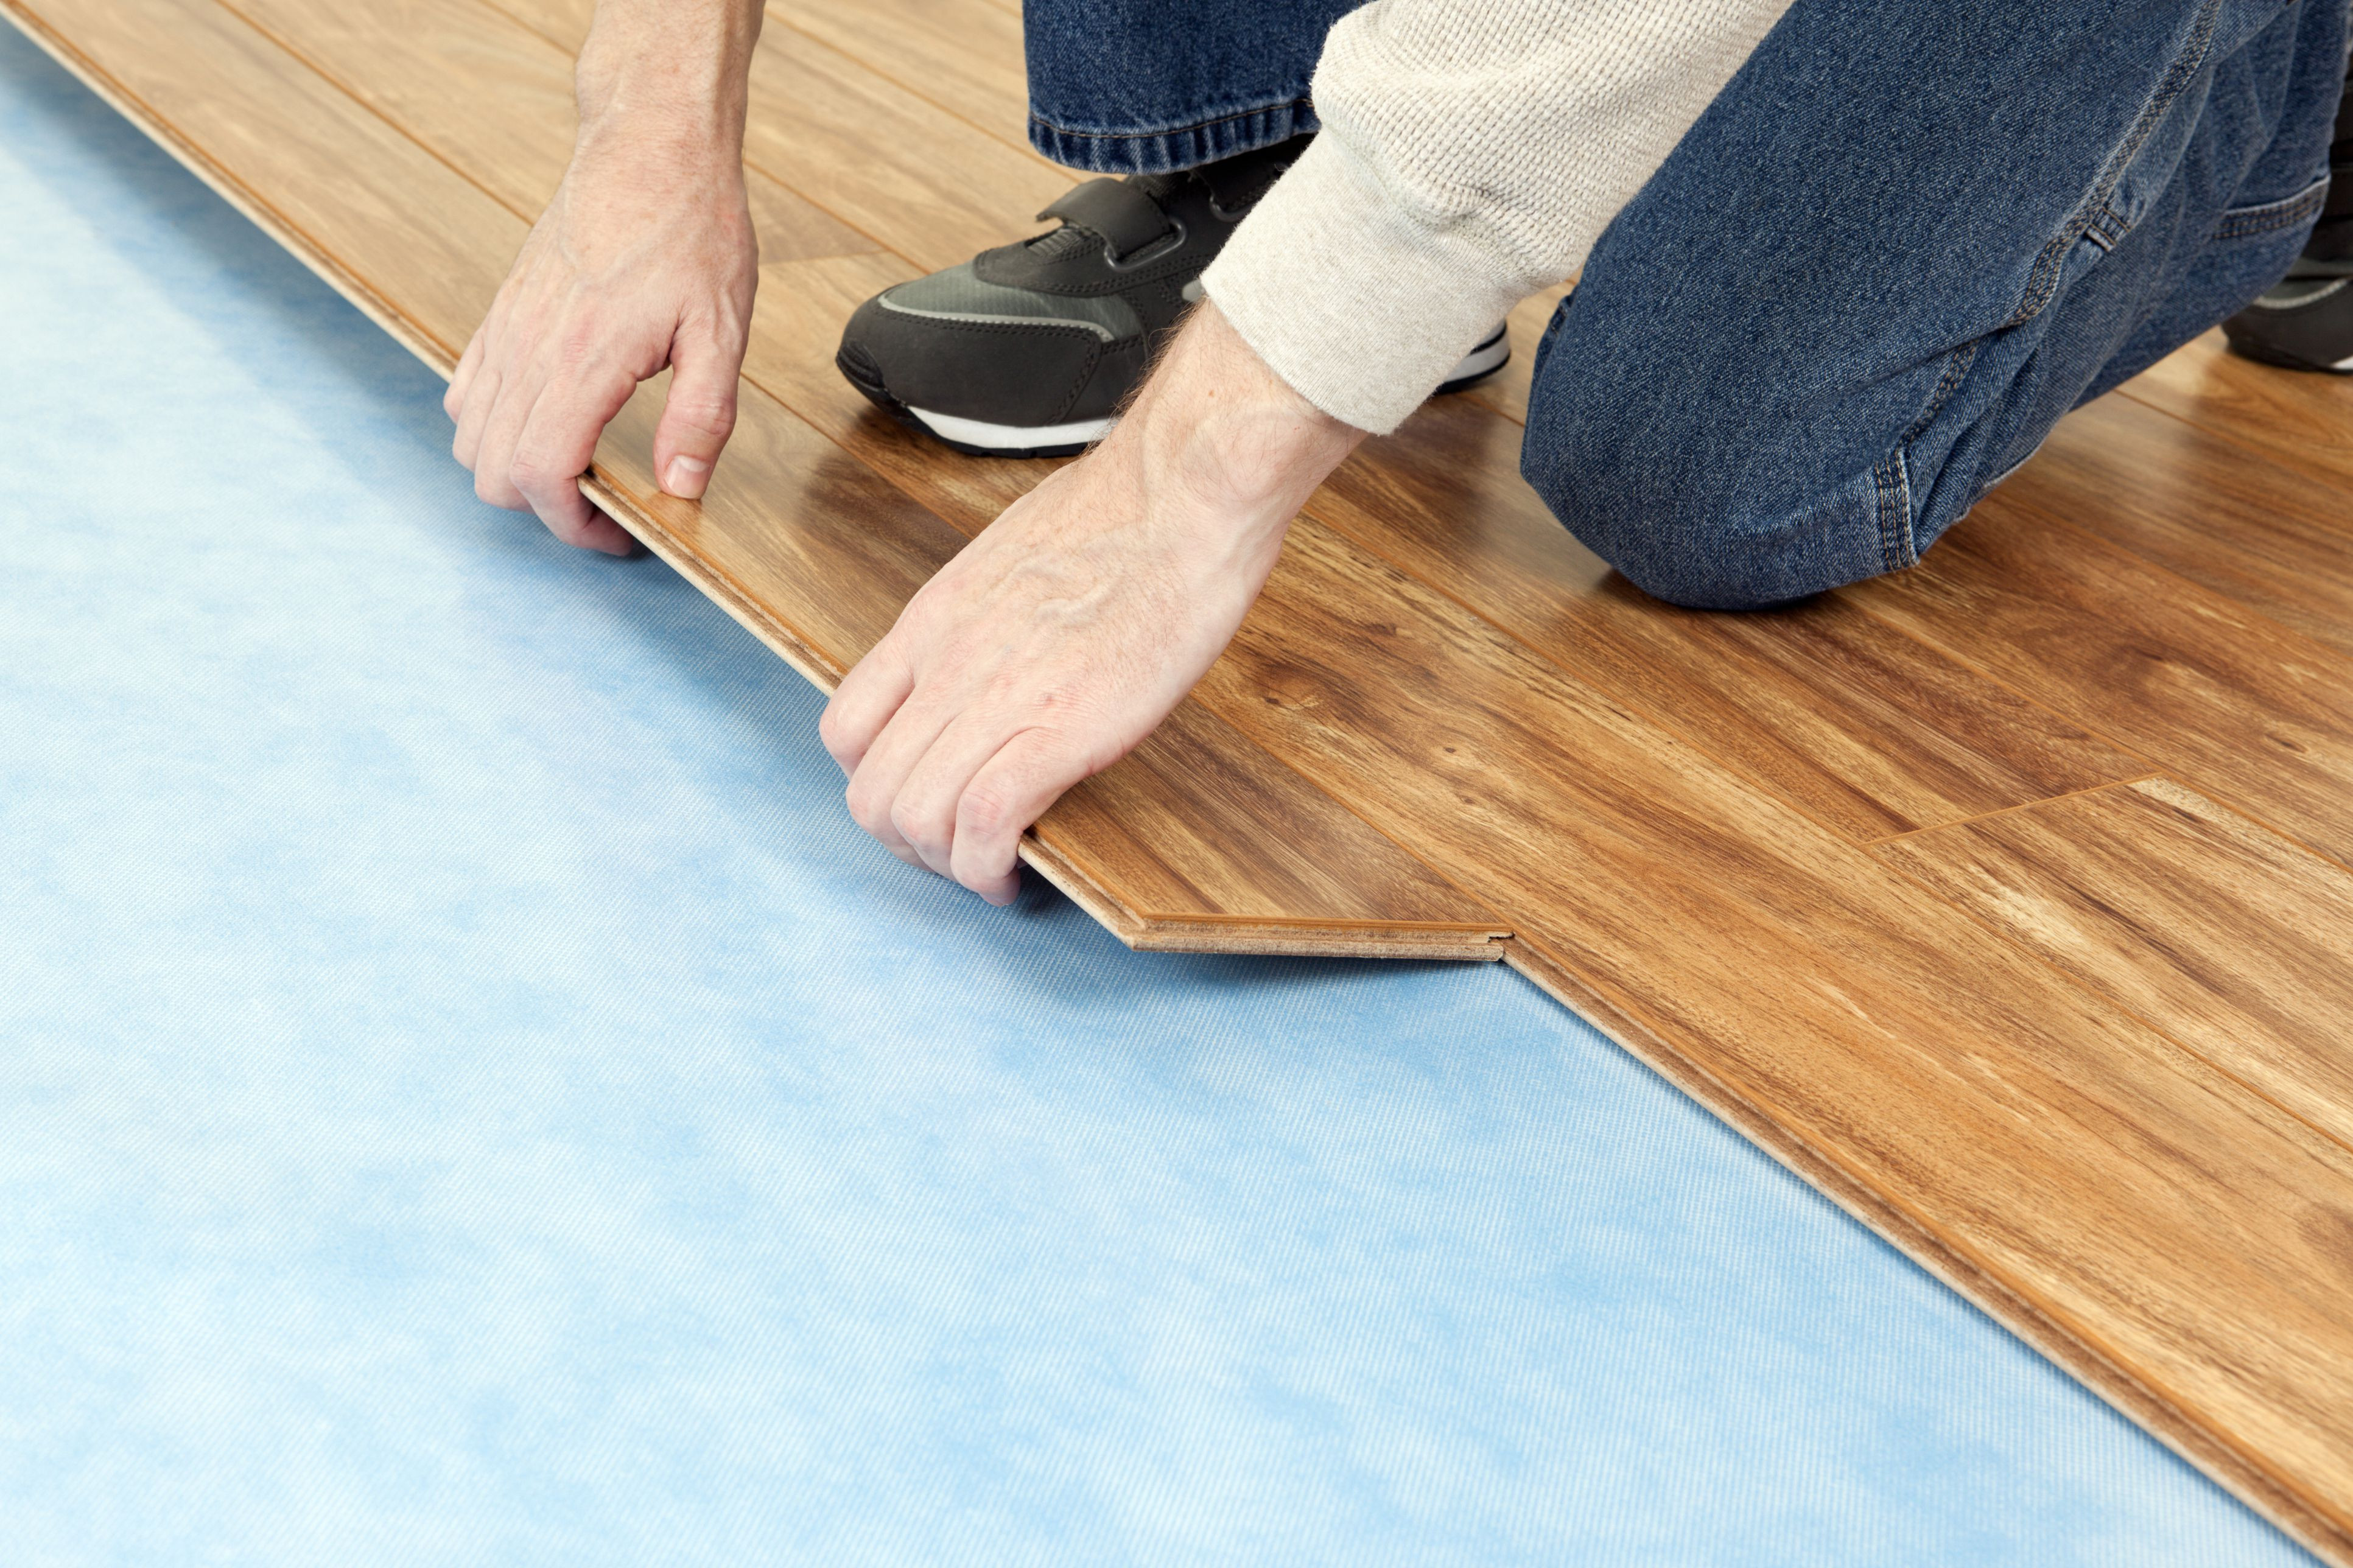 hardwood floor vapor barrier paper of flooring underlayment the basics throughout new floor installation 185270632 582b722c3df78c6f6af0a8ab